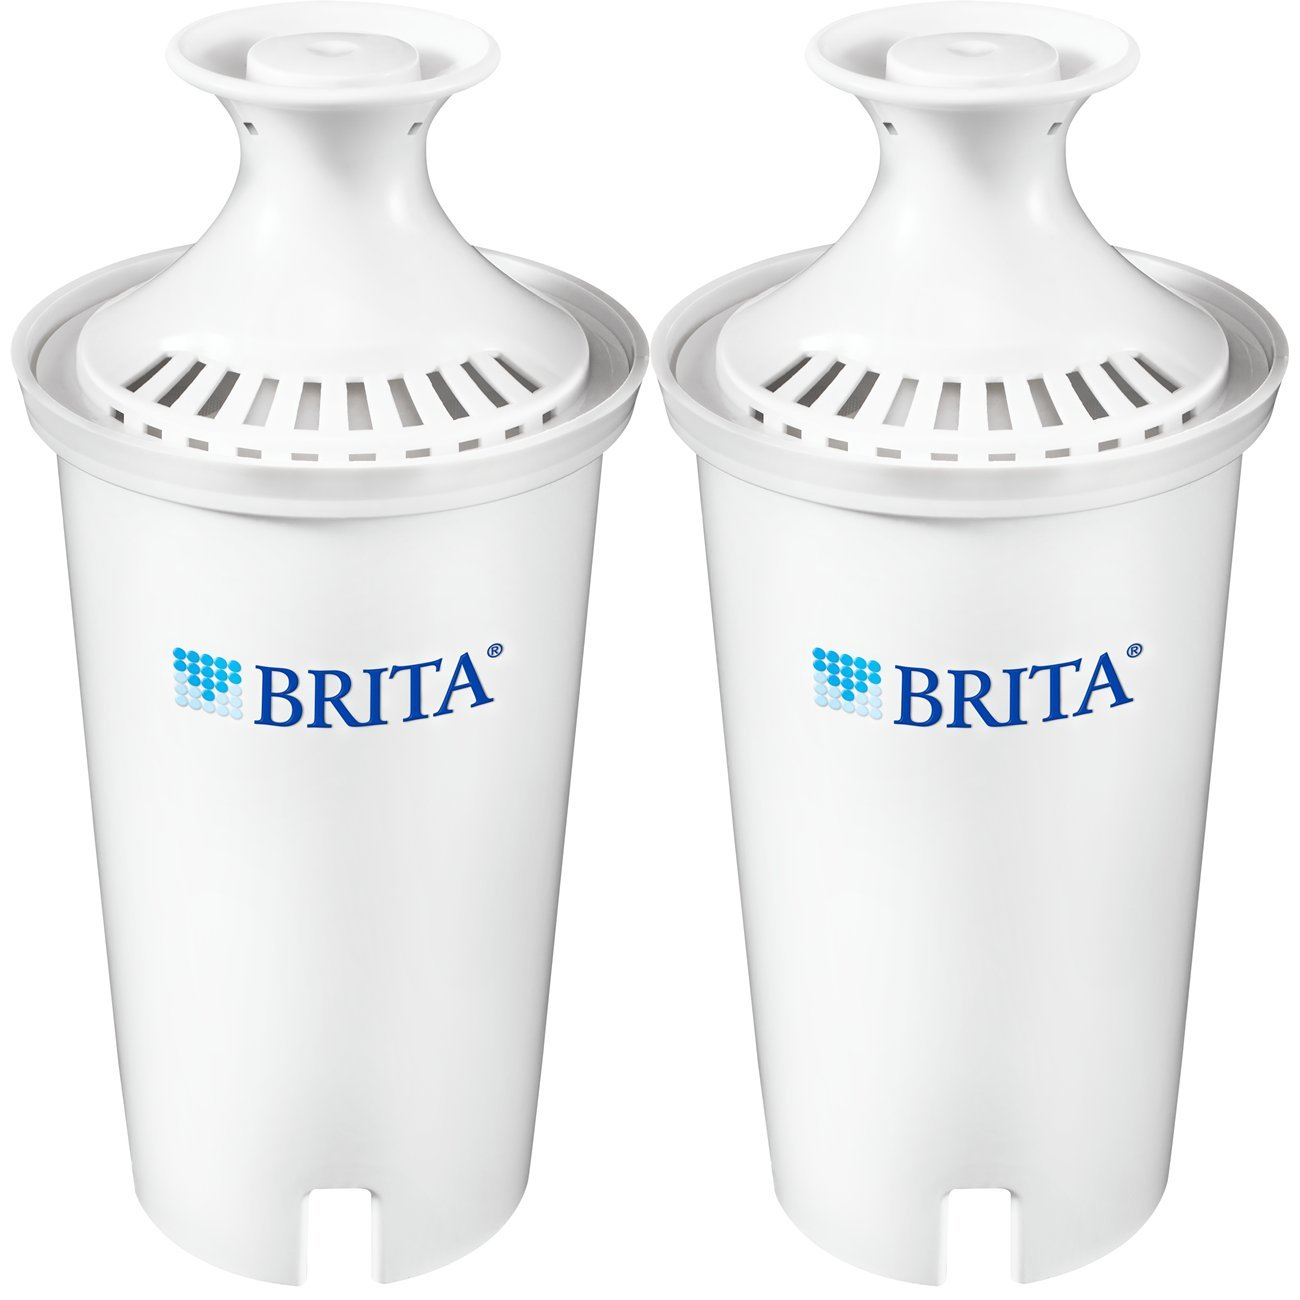 Brita Water Pitcher Filter Replacements 2 Count